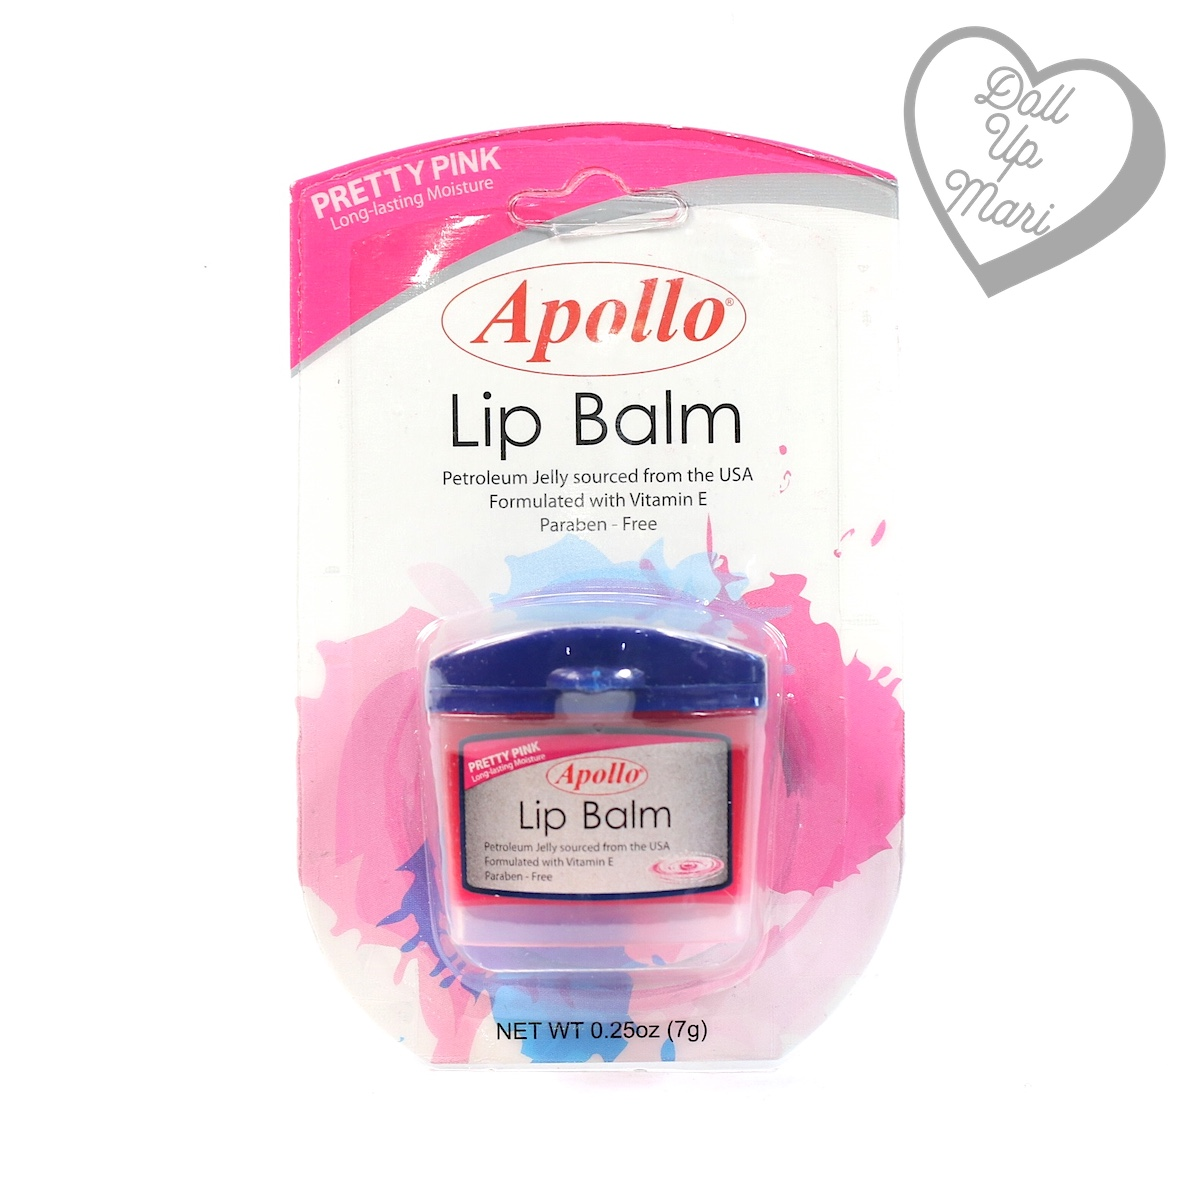 Apollo Lip Balm